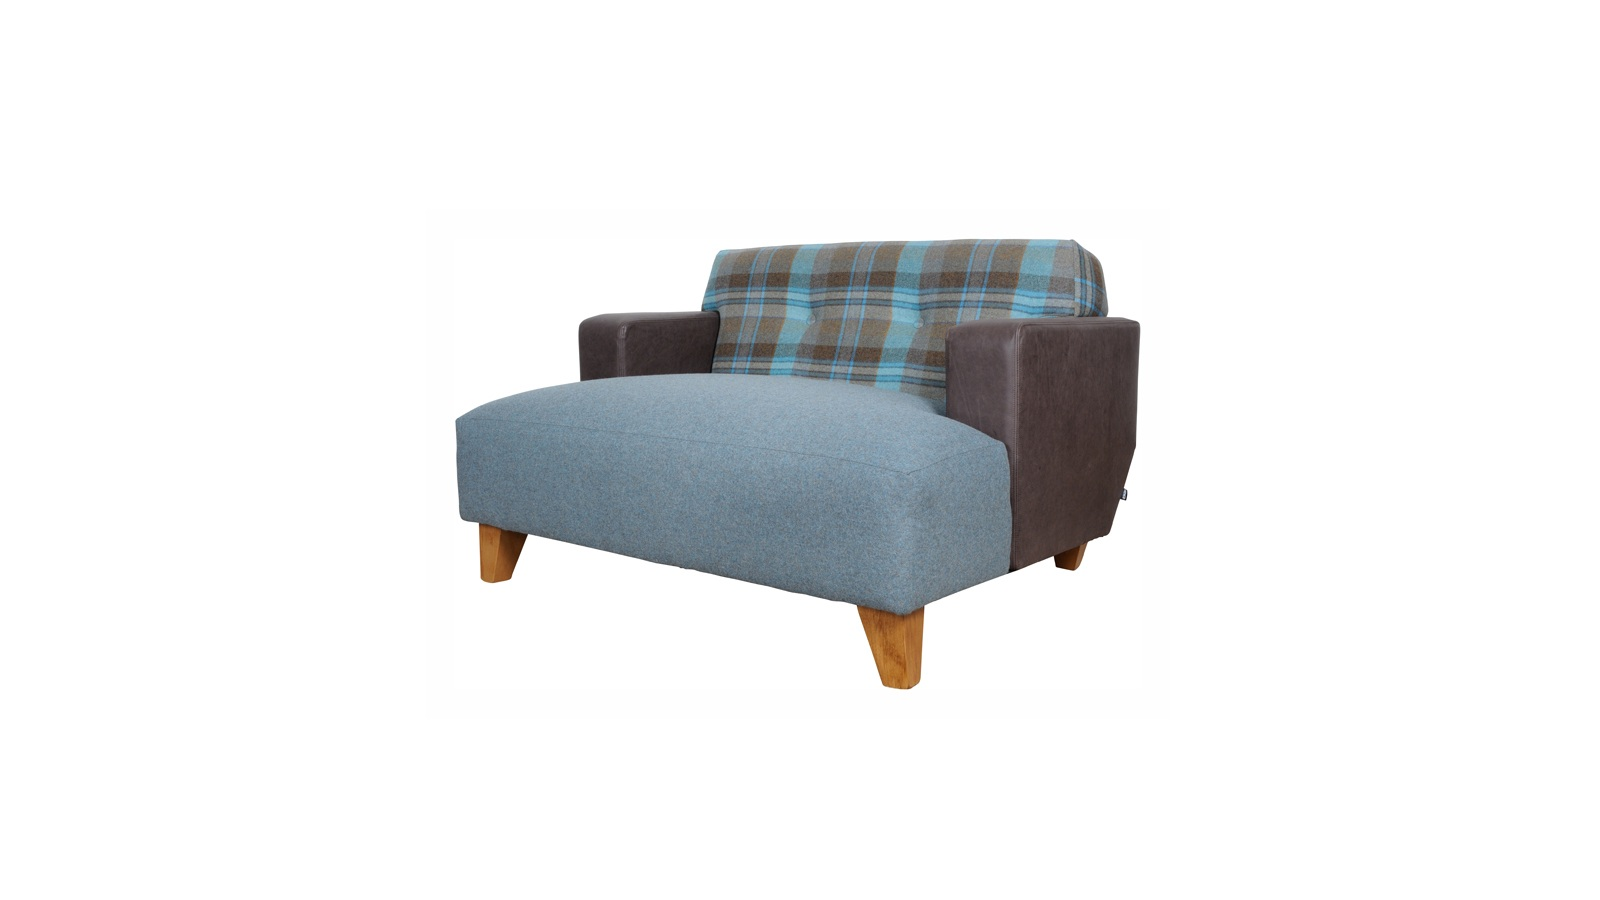 James Plant - Bisley Sofa Range 003.JPG